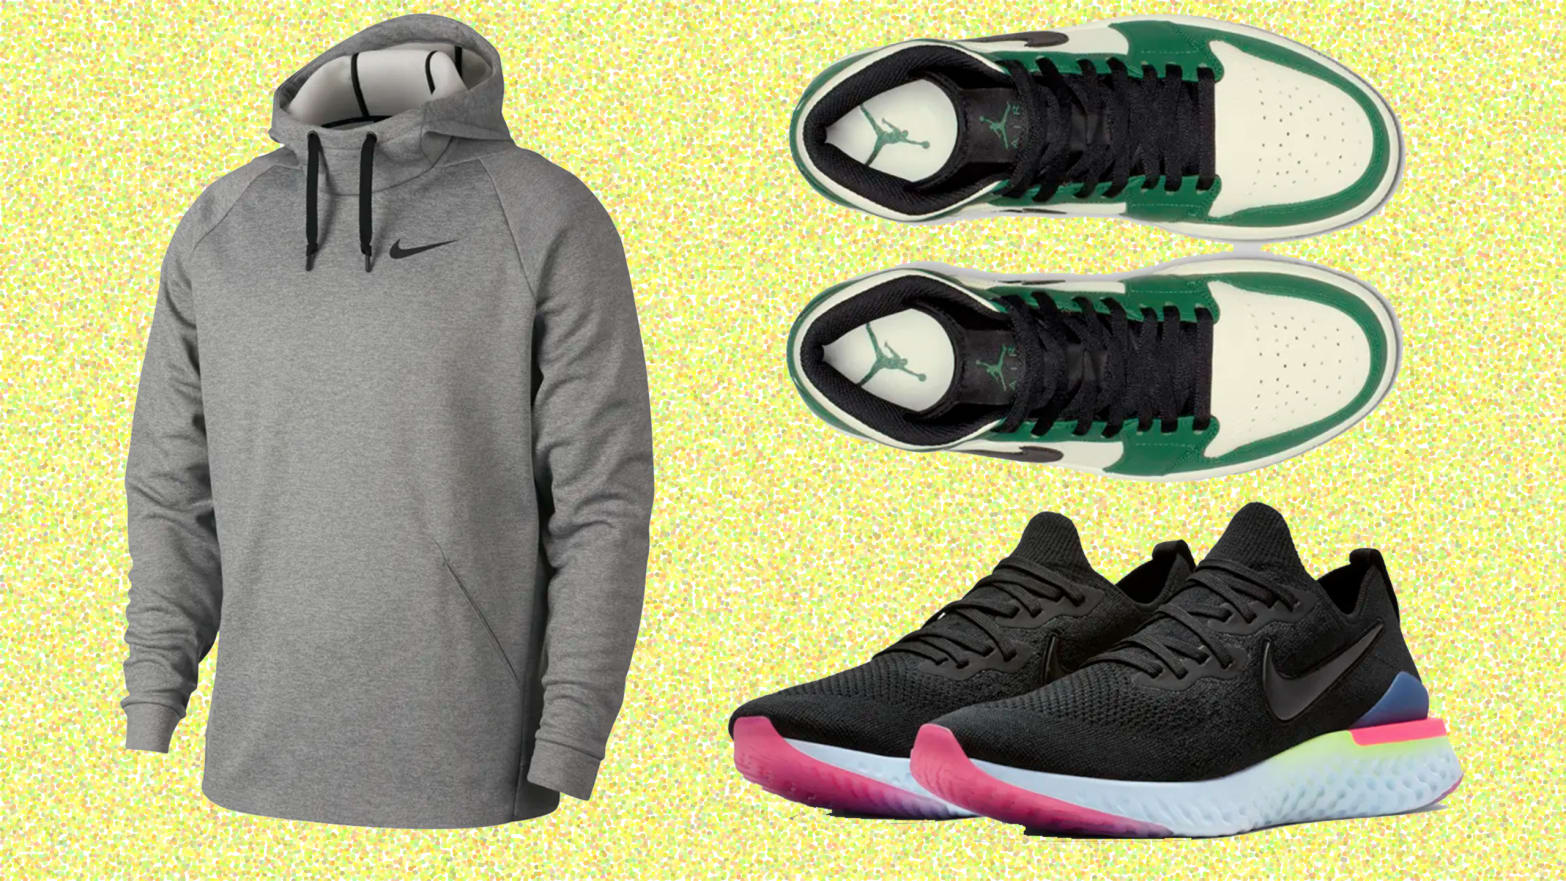 Save $30 During Nike's Sitewide, Four-Day Discount Sale on Orders Above $150